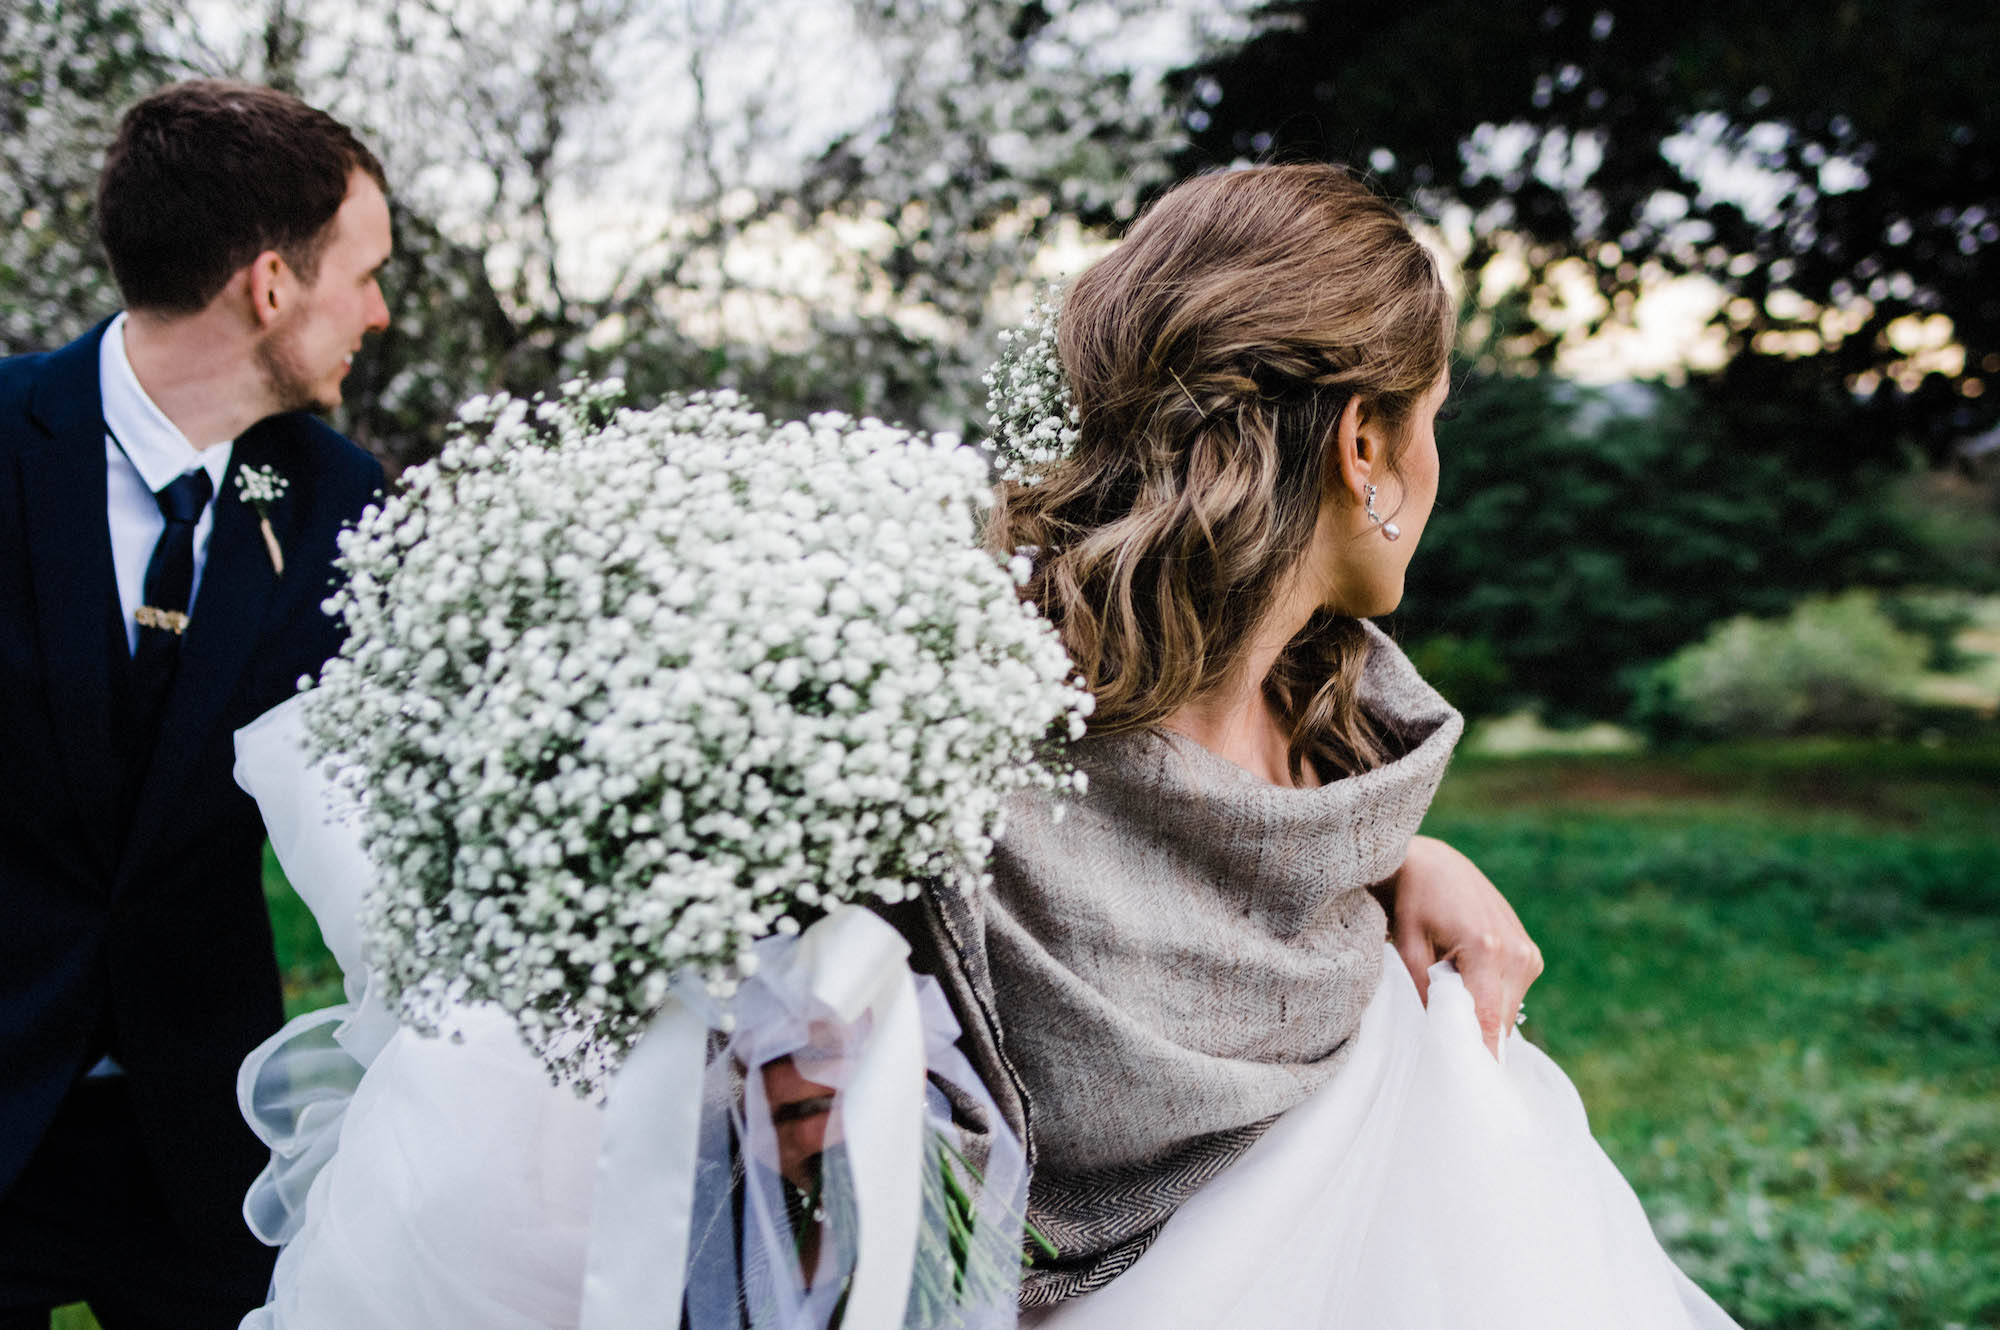 A candid wedding photo of the bride & groom walking together.